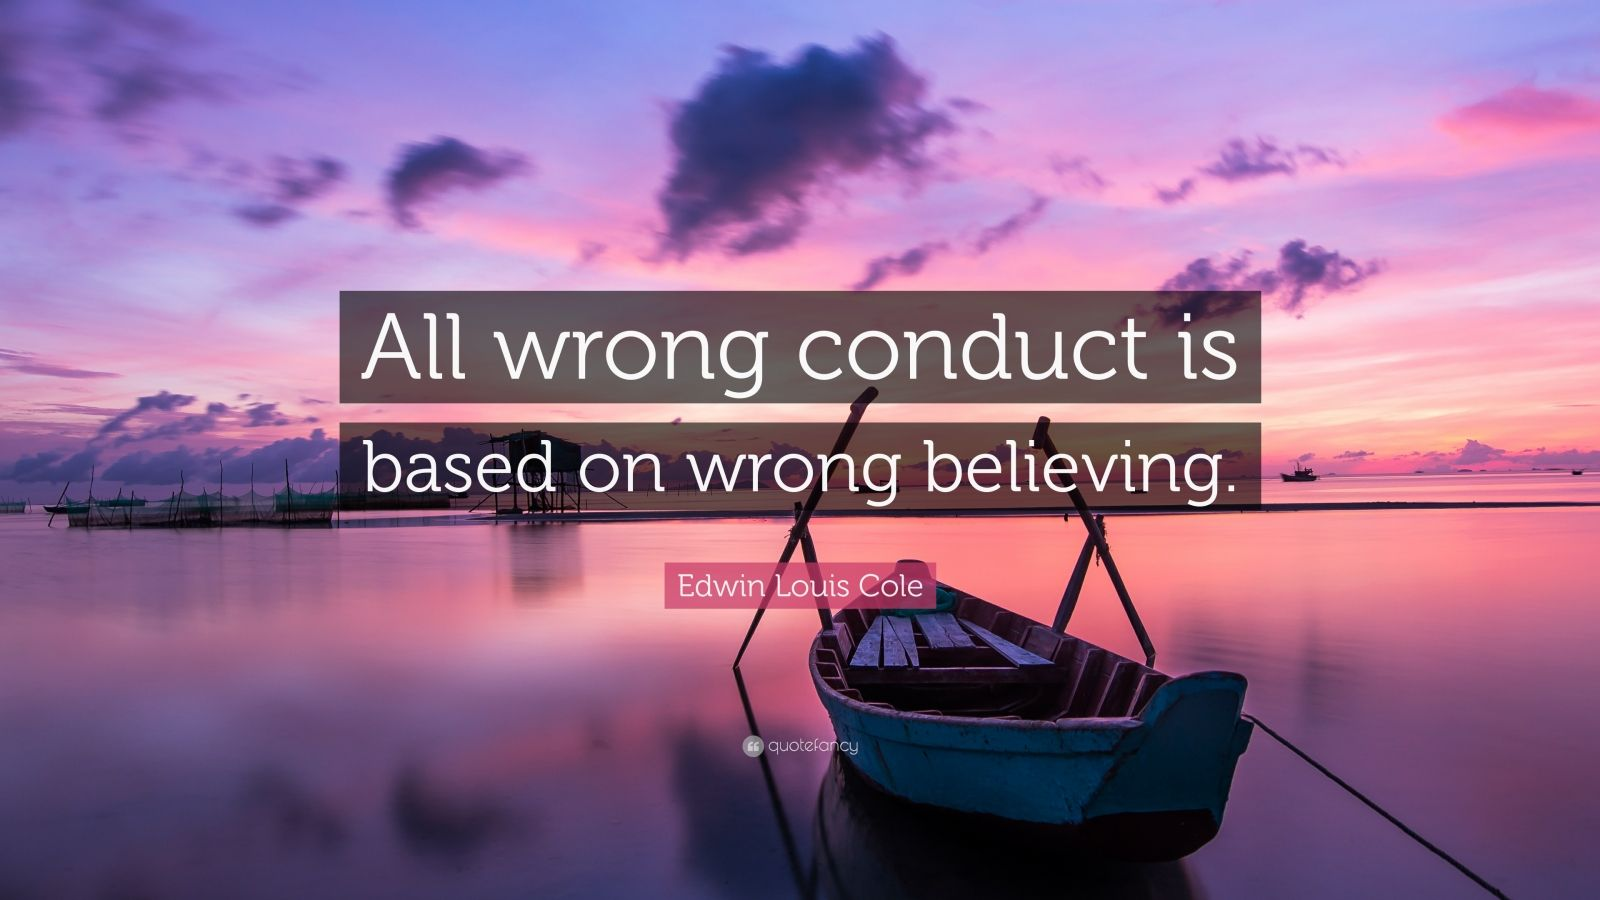 """Edwin Louis Cole Quote: """"All wrong conduct is based on wrong believing."""""""